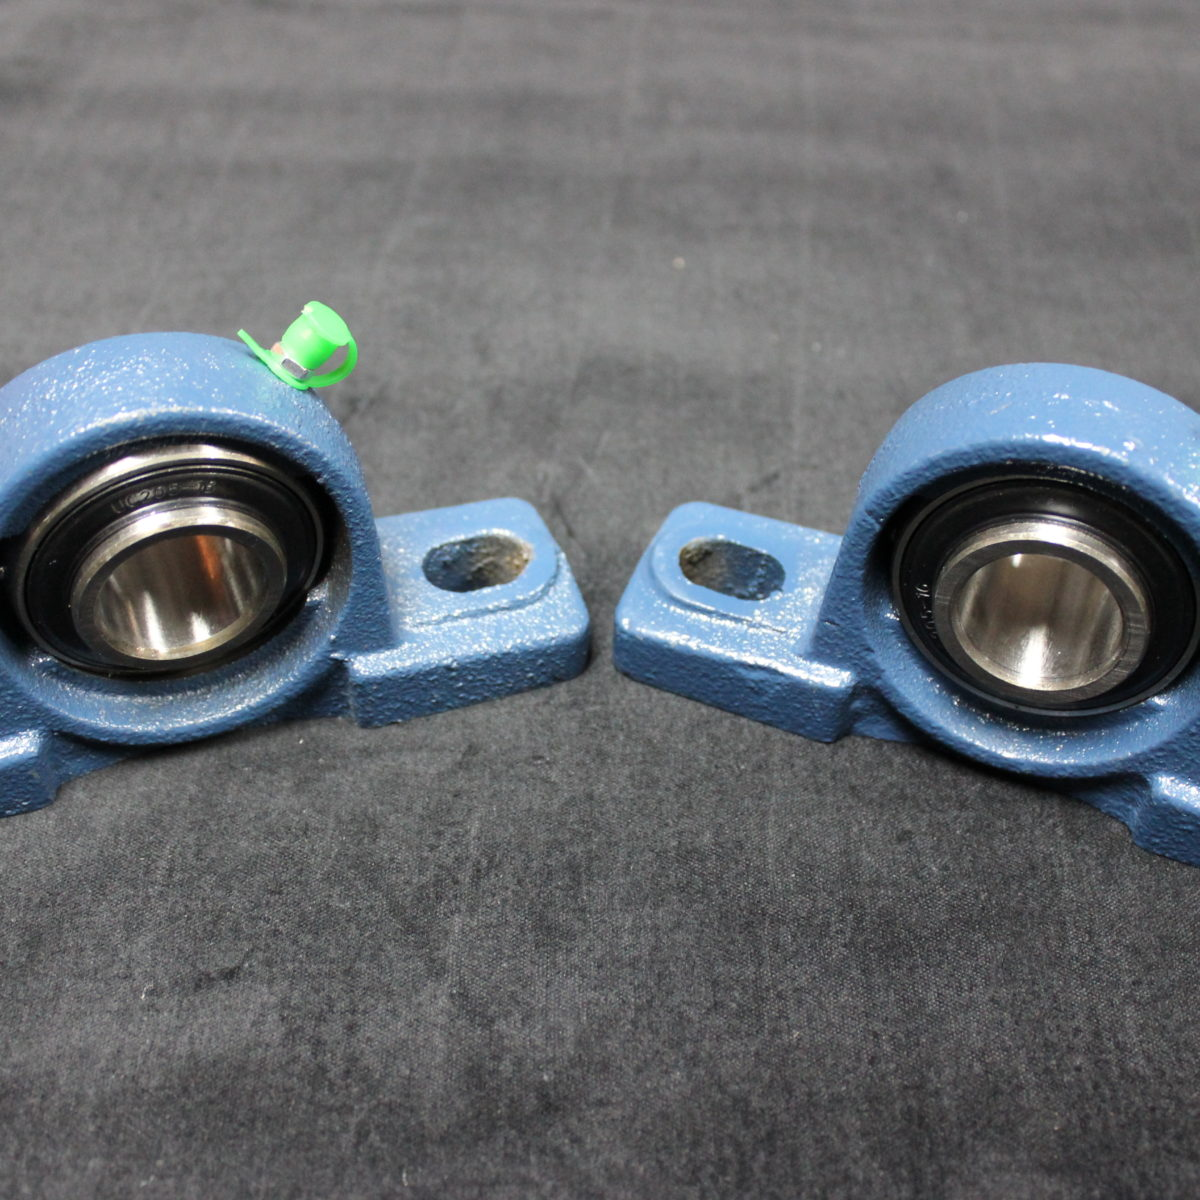 Wake Model Bearing Blocks - For Wakeboard/Waterski Winch